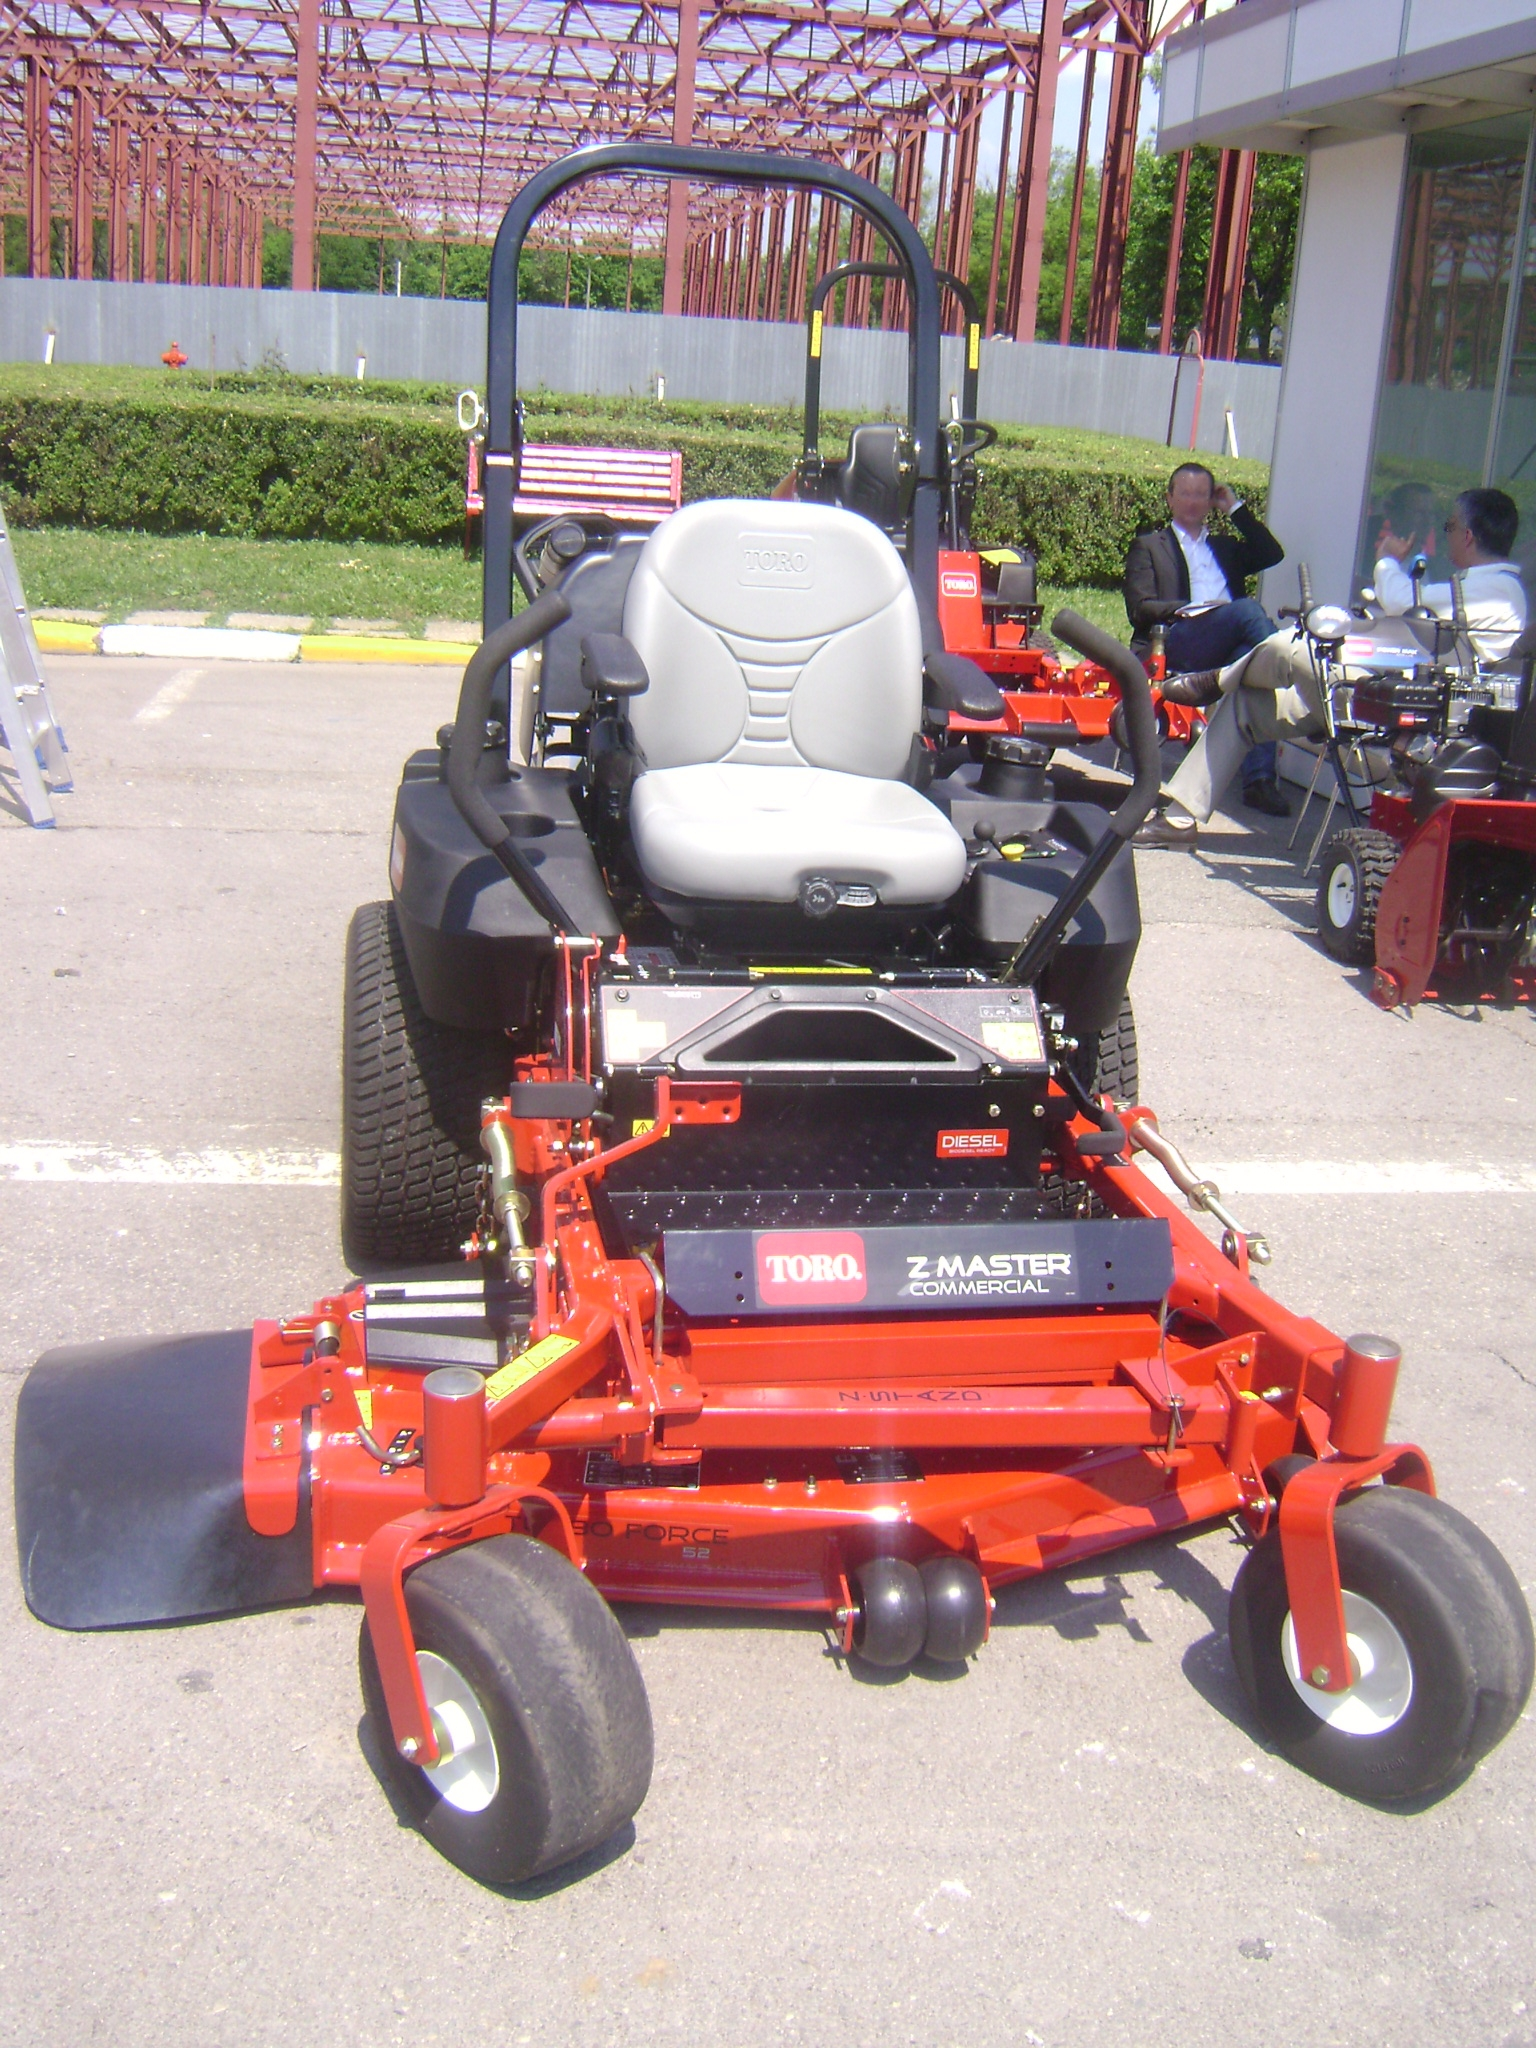 Craftsman Briggs Stratton 675 Mower besides John Deere 68 Riding Mower Belt Diagram 464044 furthermore Adx3s Drive Belt Off Husqvarna 46 Zero Turn also 33146 Wheel Horse Super Stock Pulling Tractor likewise Watch. on old toro mowers